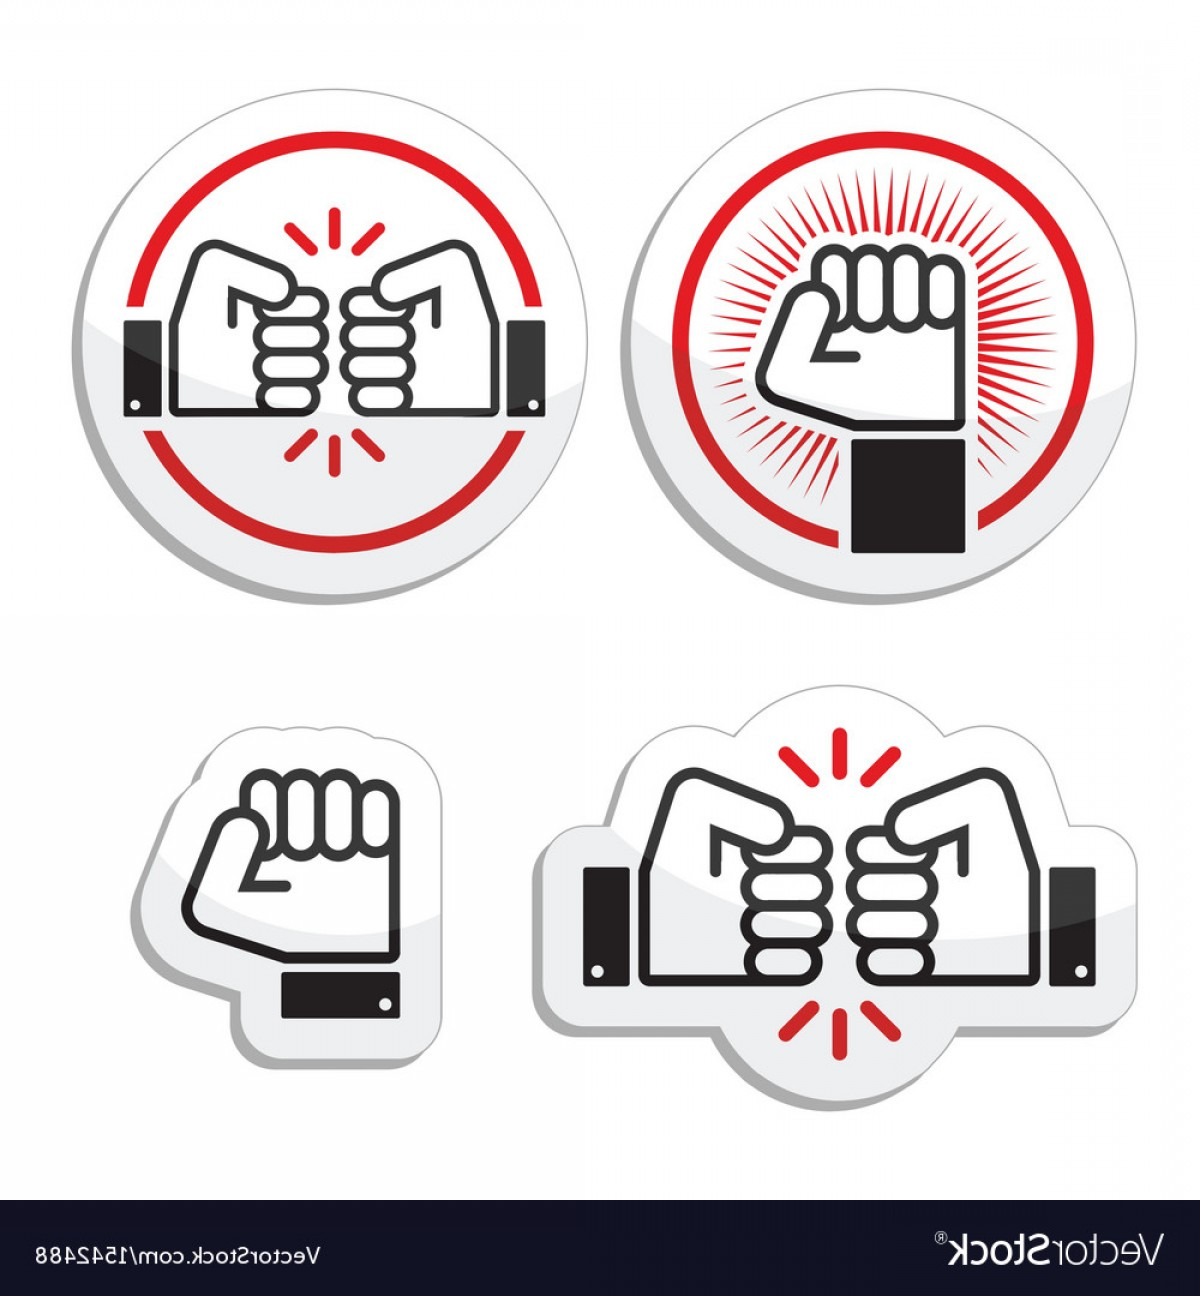 Emoji Fist Bump Vector Graphic: Fist Fist Bump Icons Set Vector